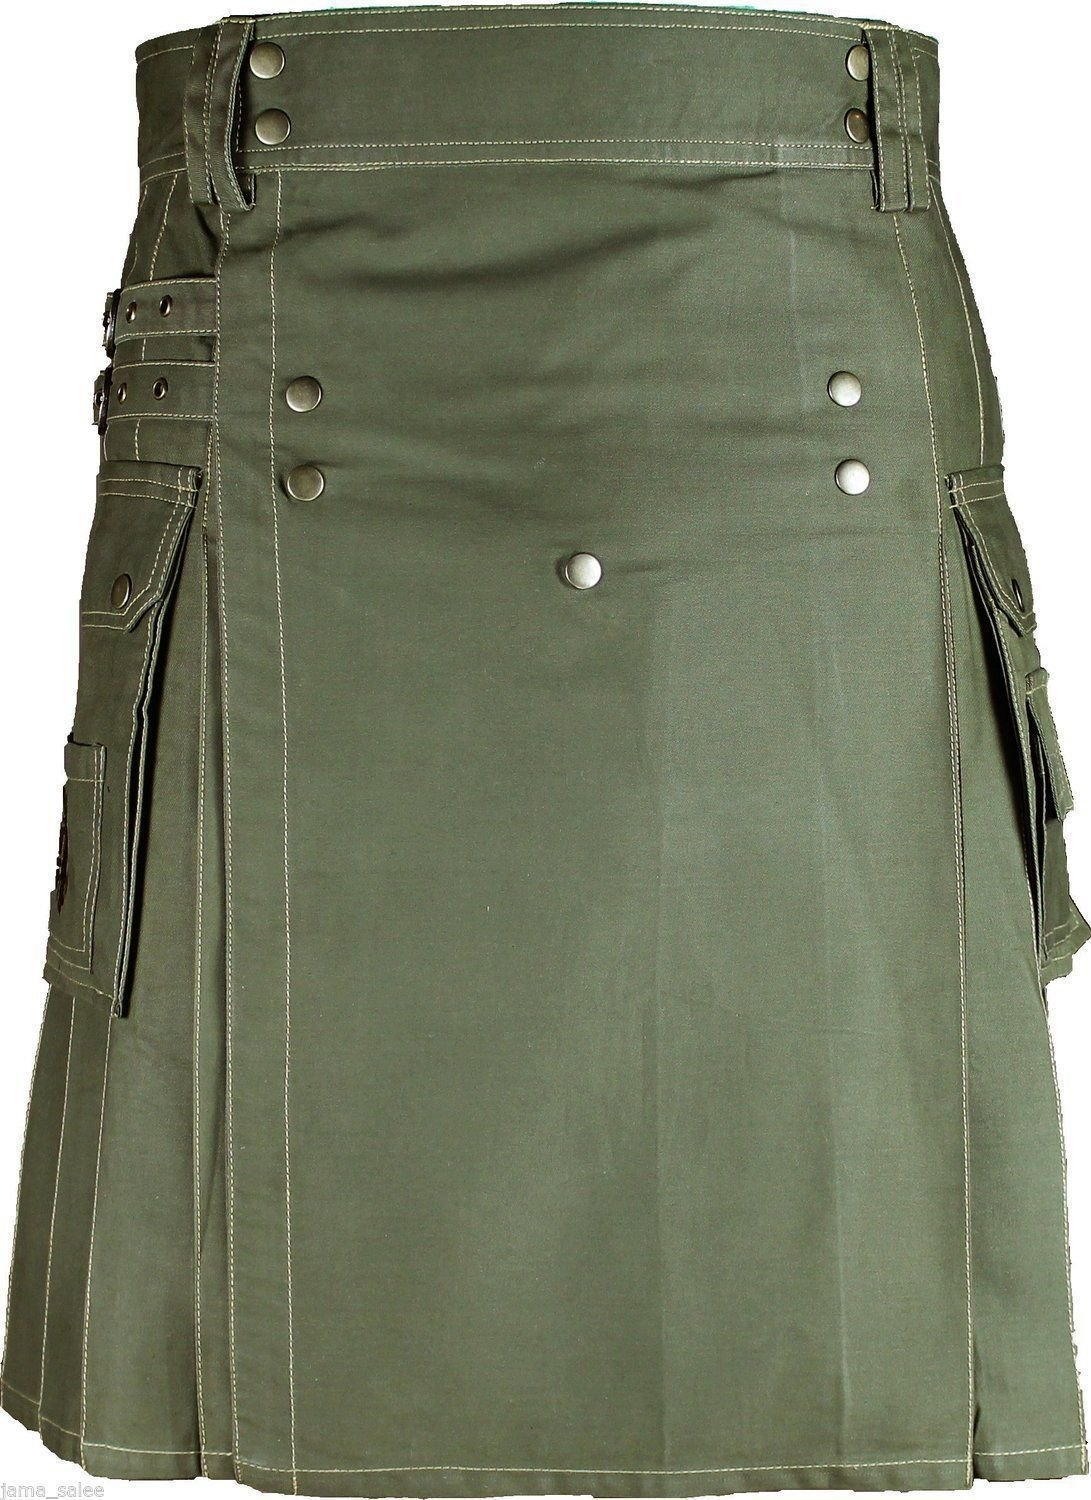 New 44 Size Modern Olive Green Kilt Traditional Scottish Utility Cotton Kilt